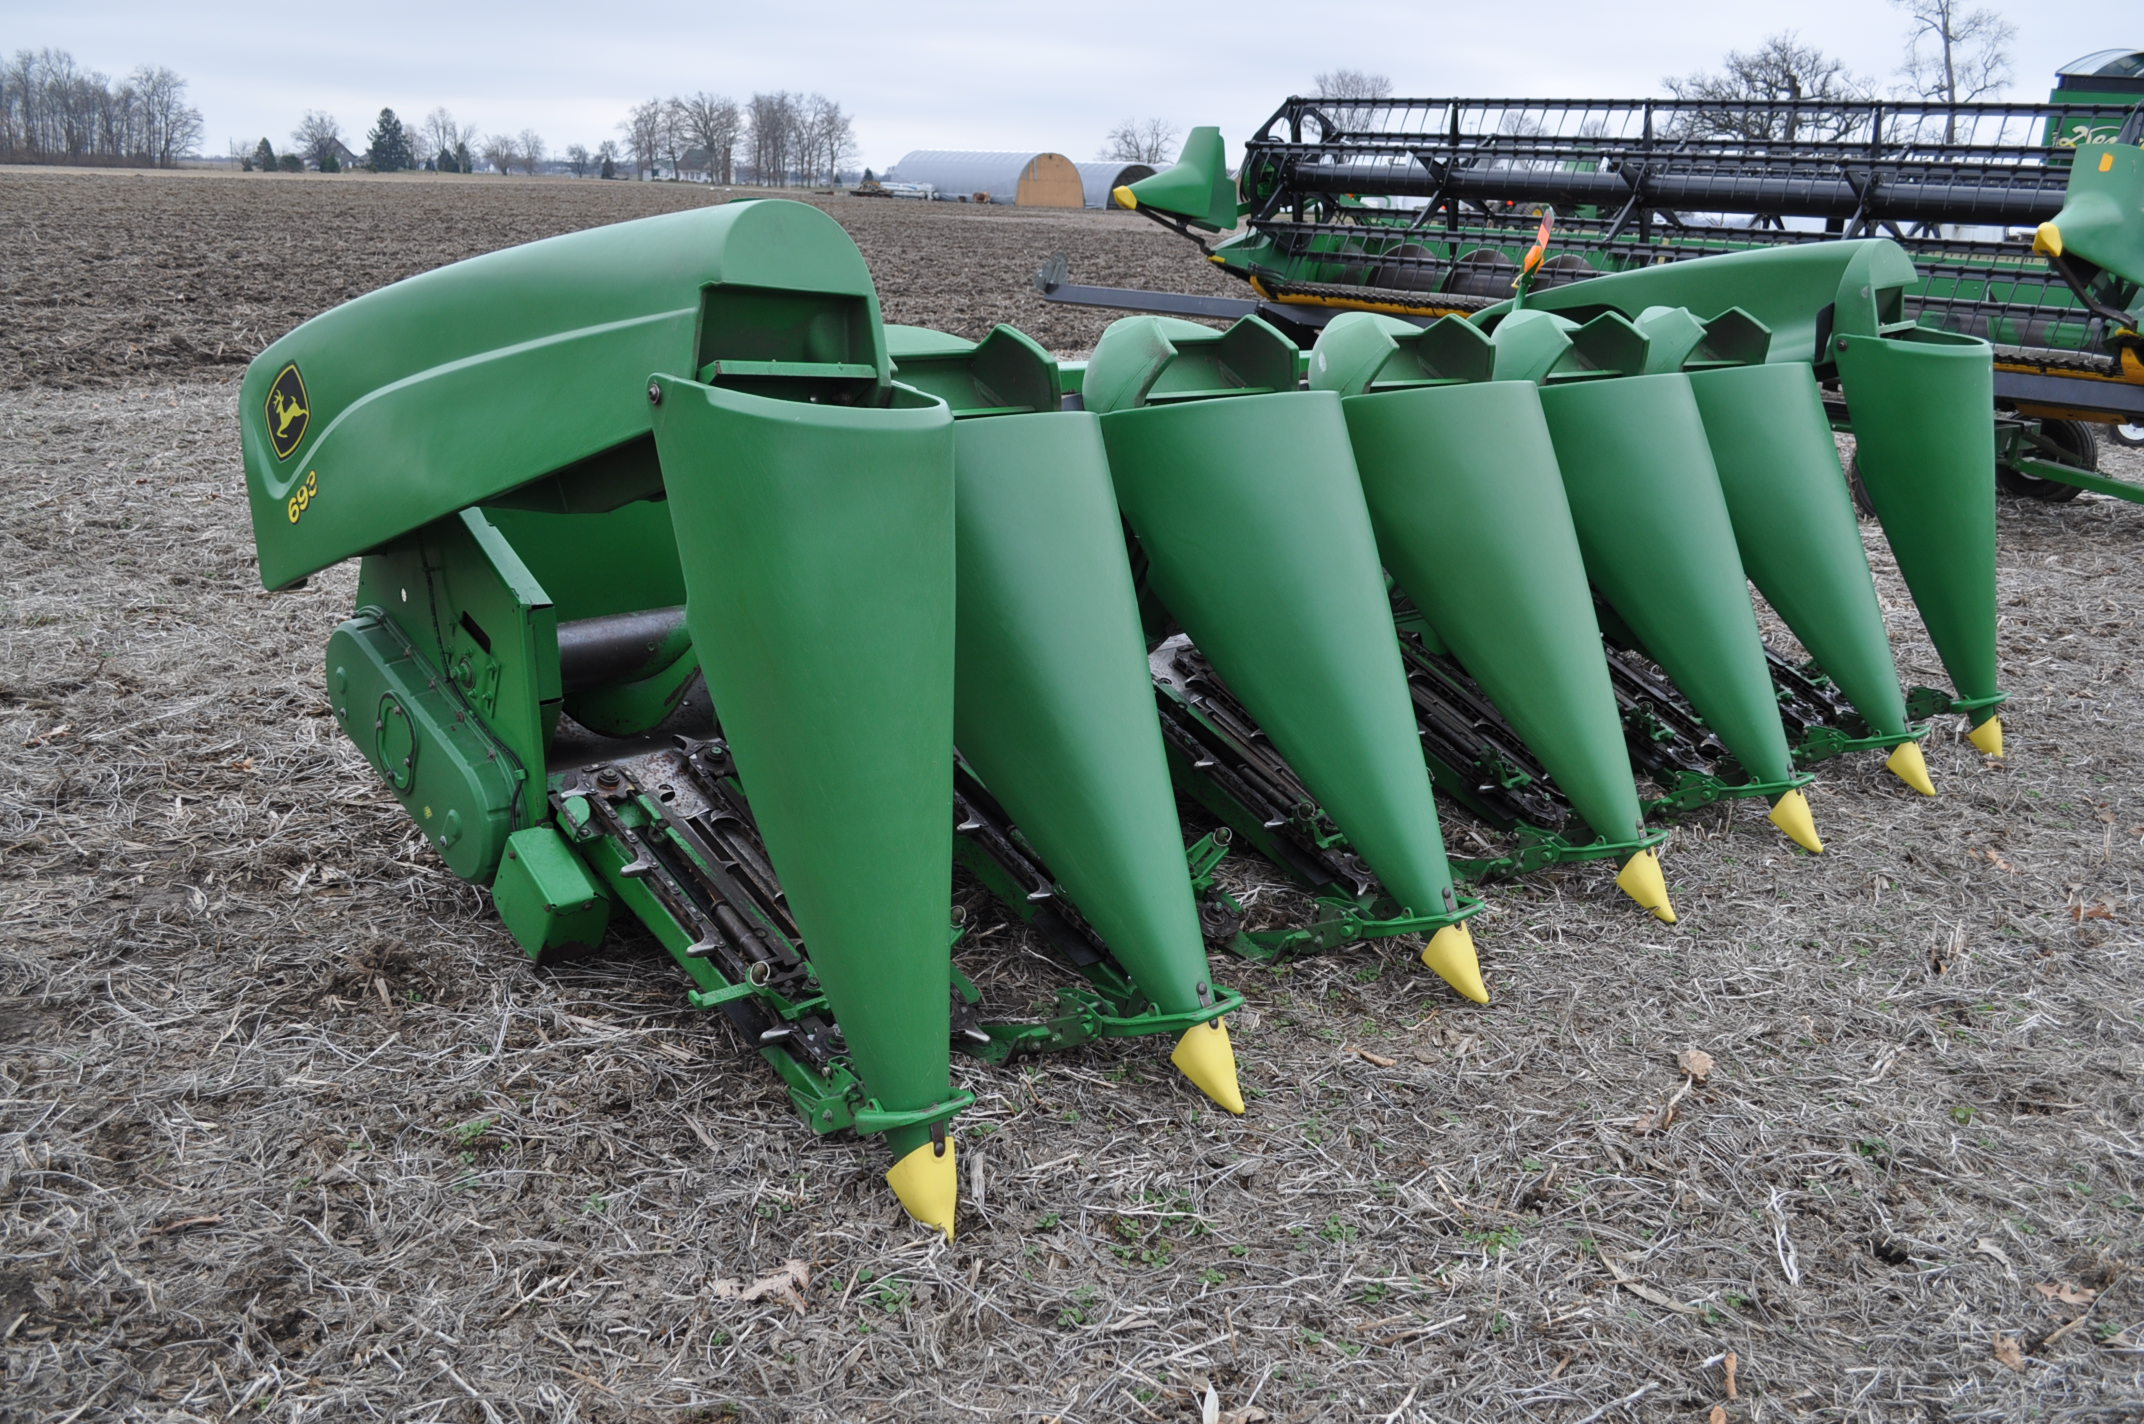 John Deere 693 corn head, poly, fluted rolls, hyd deck plates, pto shafts, SN 710815 - Image 4 of 14